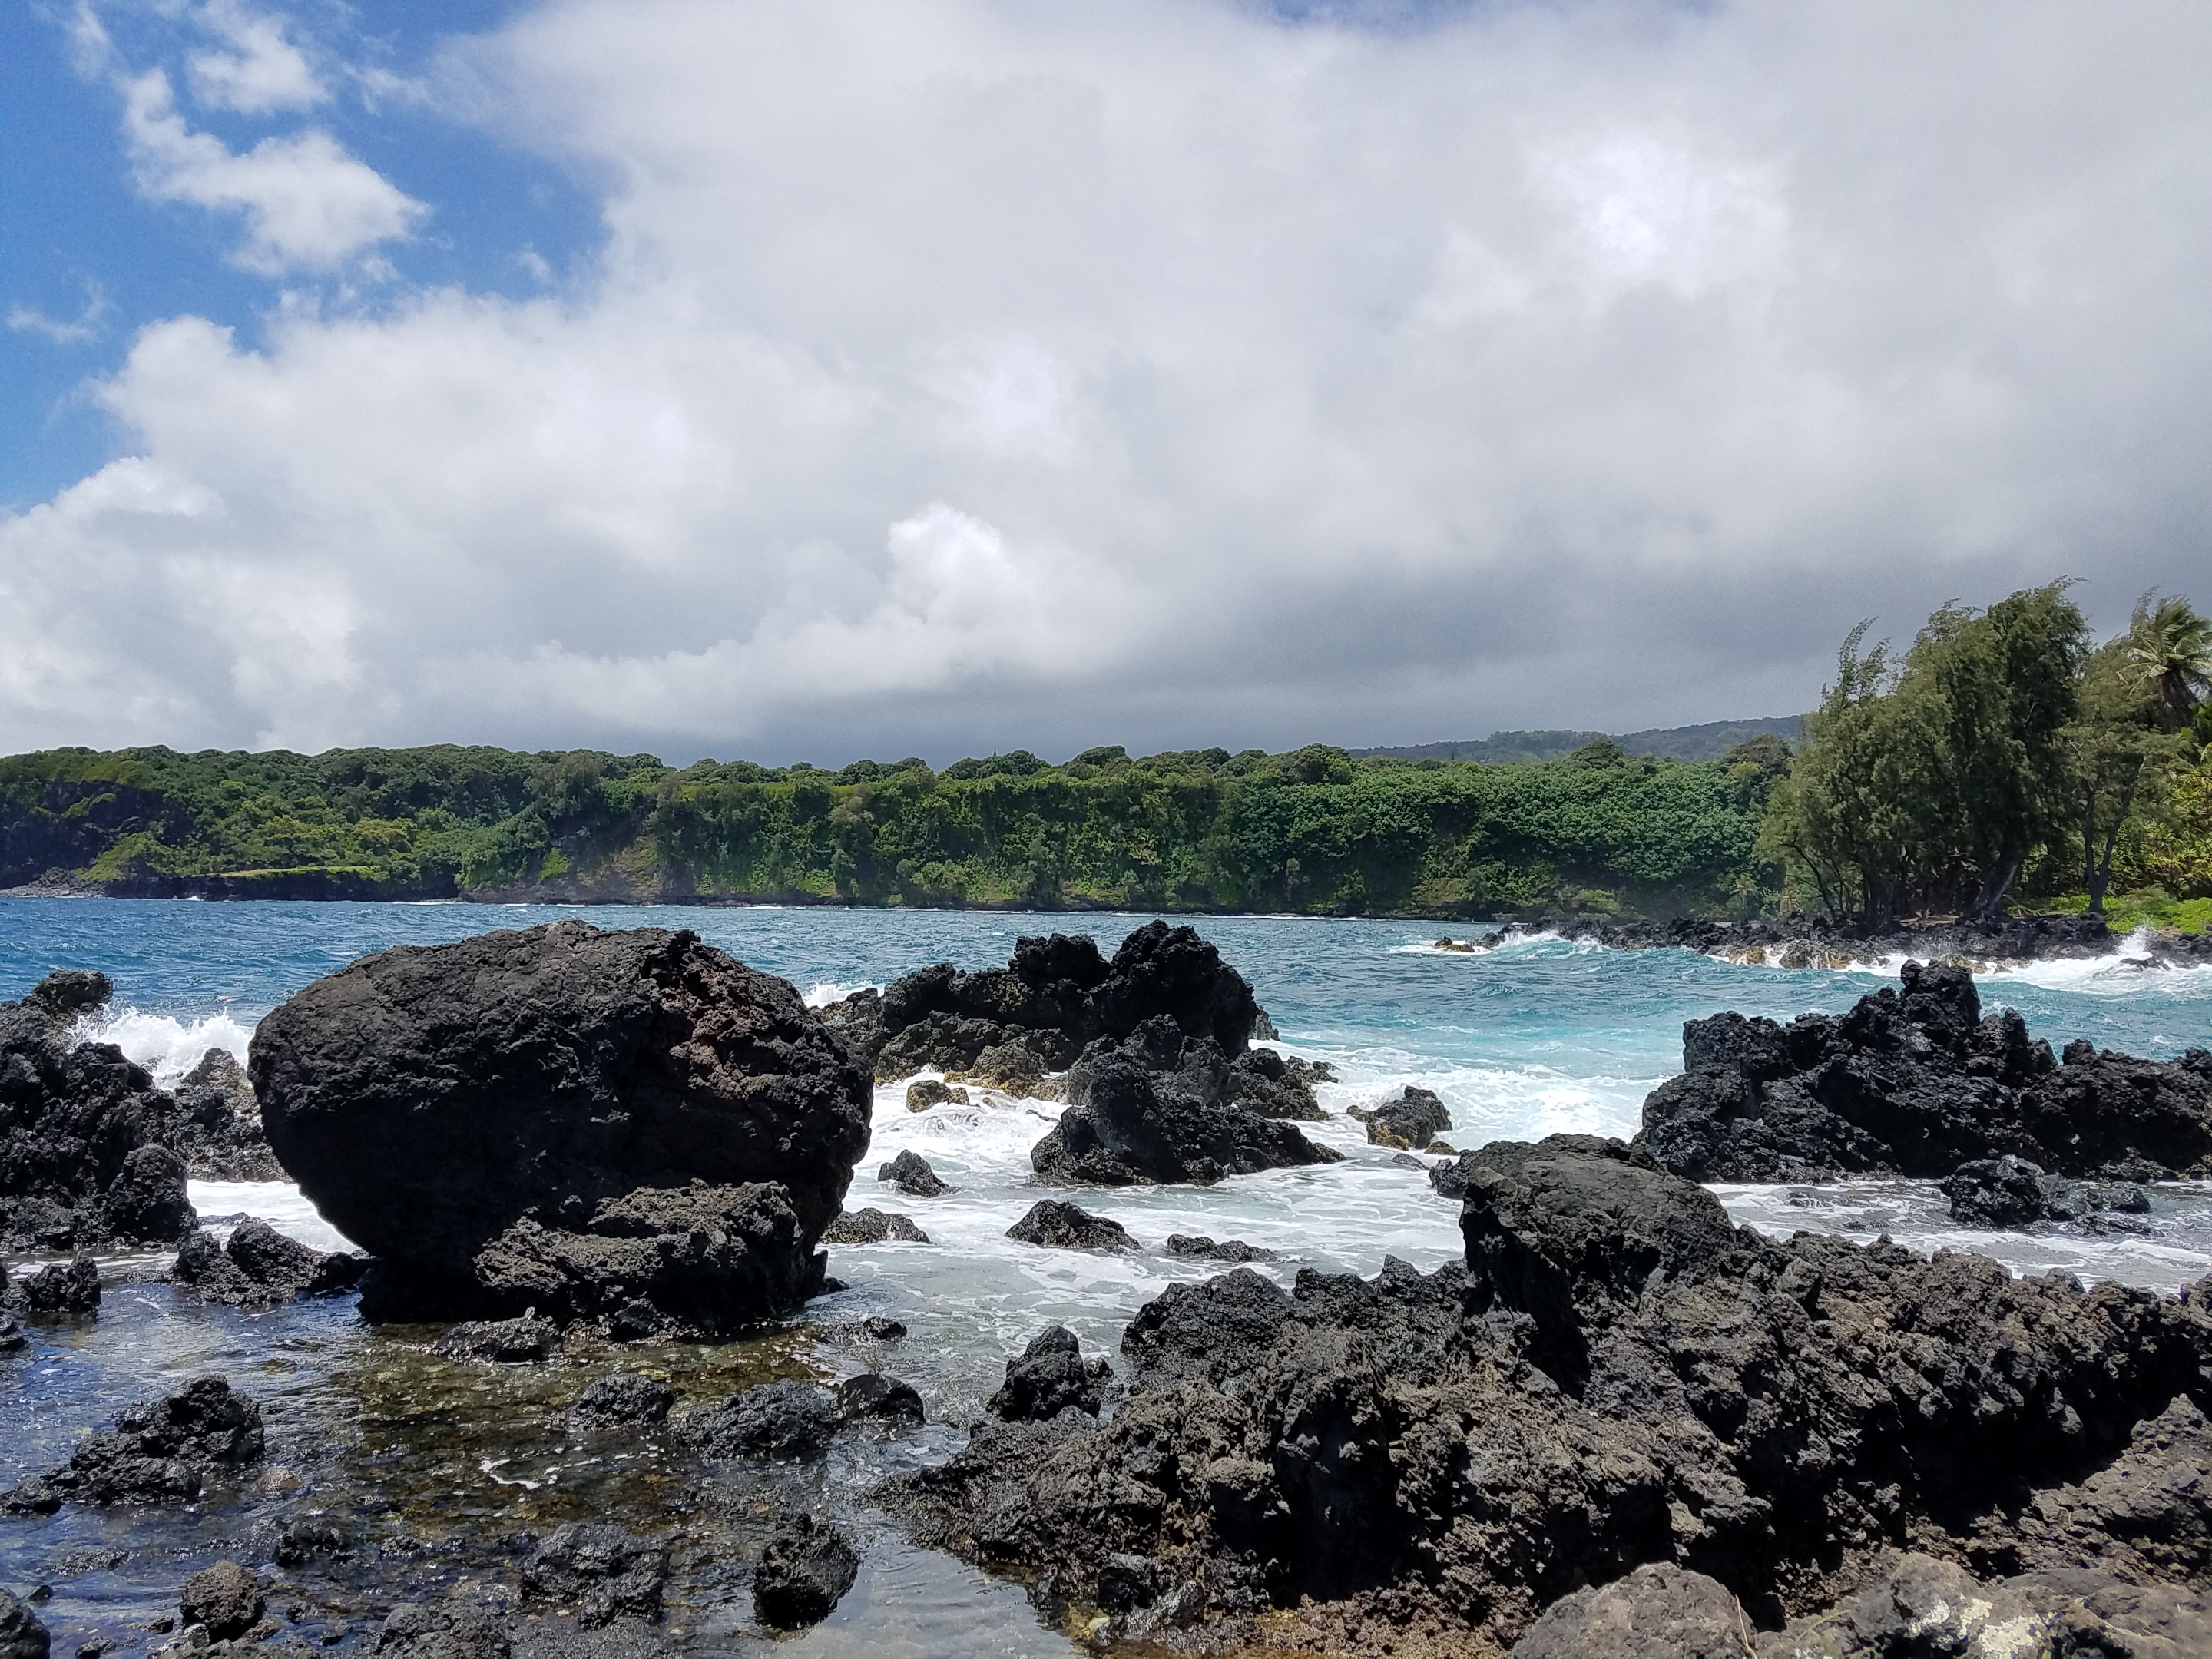 Keanae Peninsula. Road To Hana. Maui Hawaii.